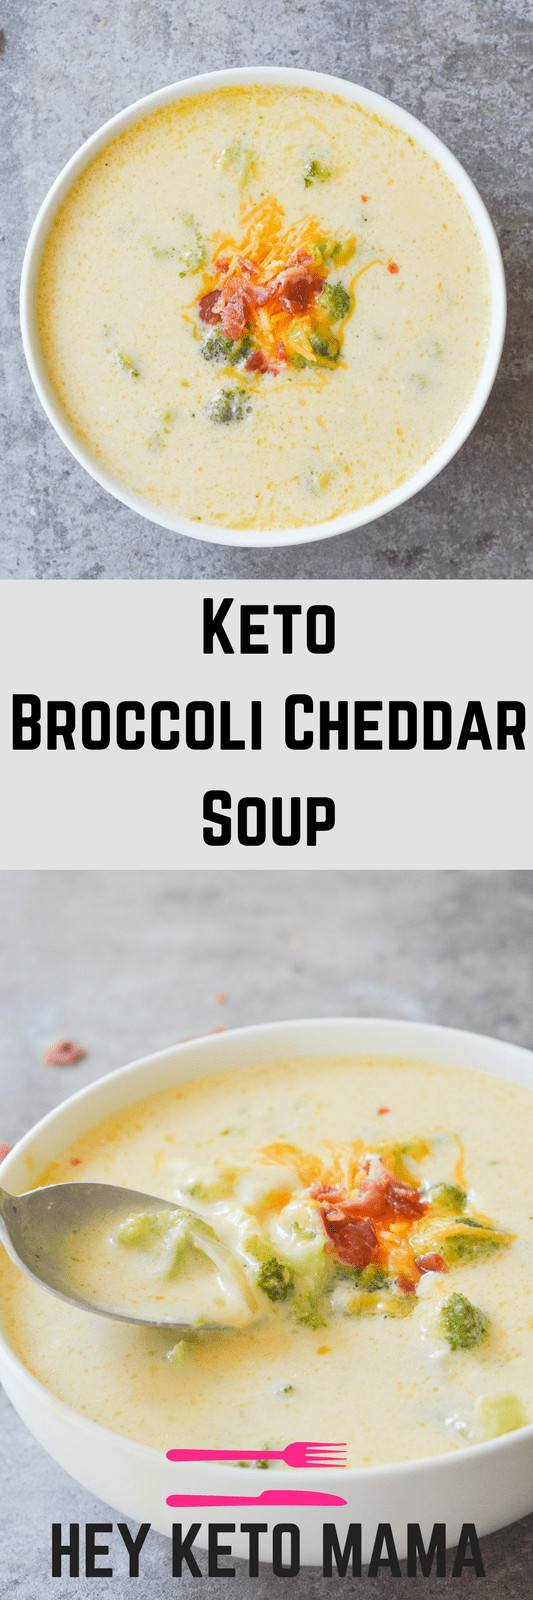 Broccoli Cheddar Soup Keto  keto broccoli cheddar soup